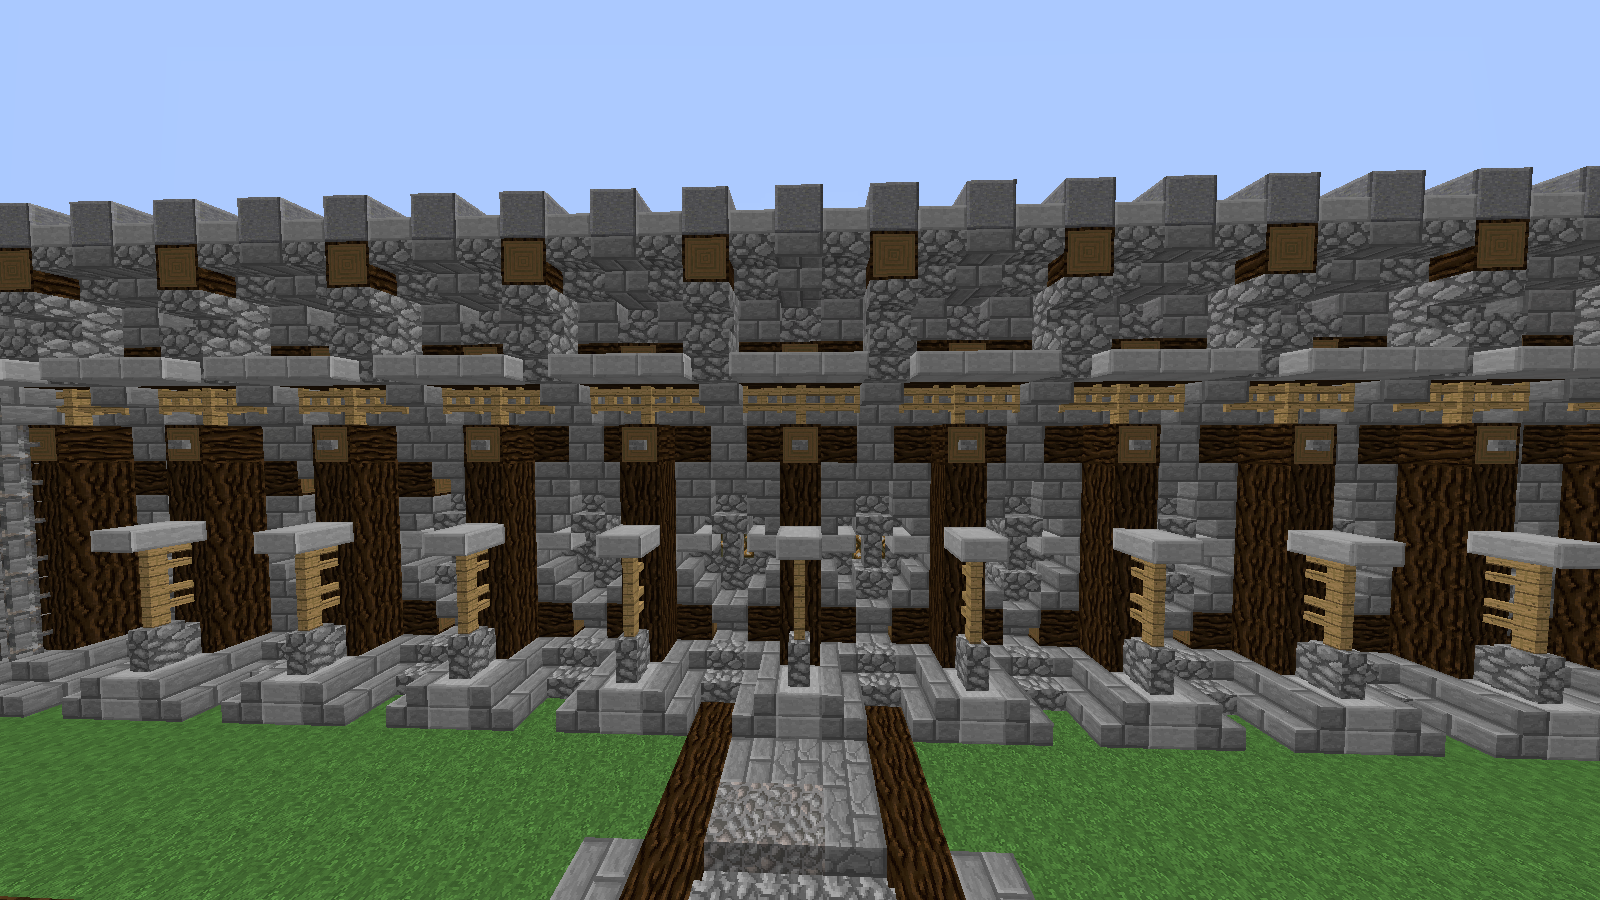 New Kit Pvp Map..(Possibly) | Page 2 | CowCraft Kitpvp Map on